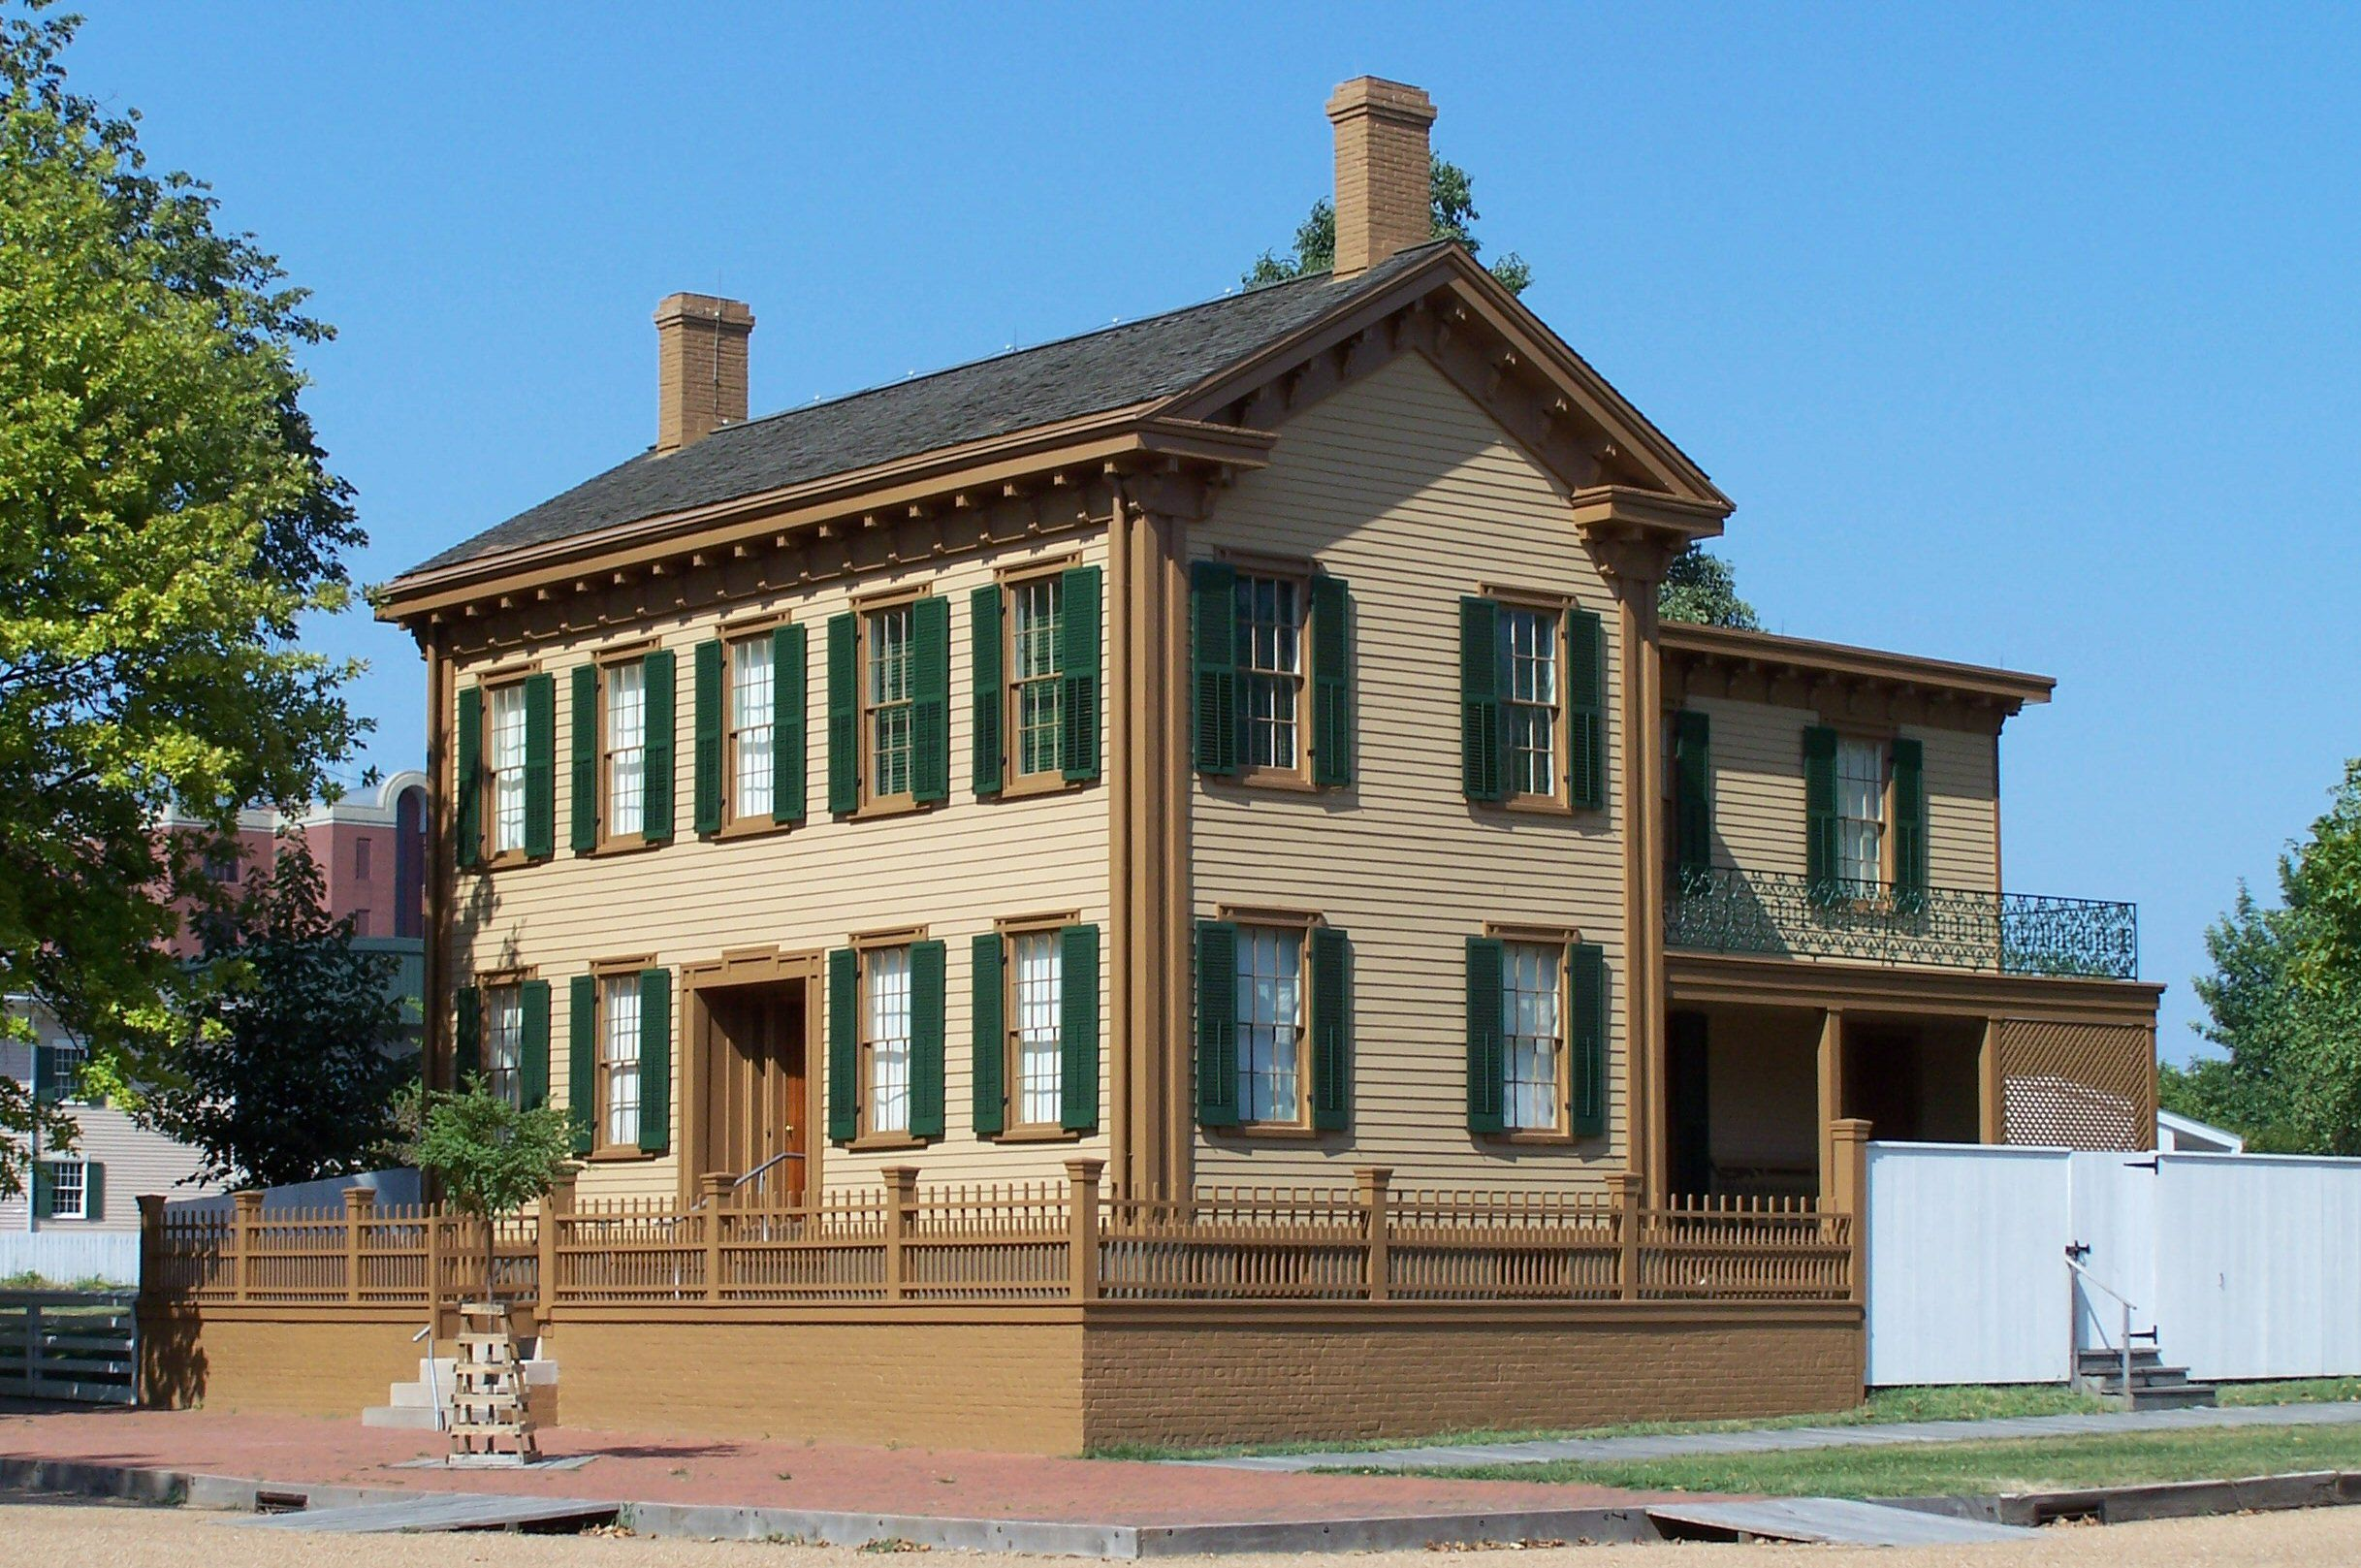 Abraham Lincoln's home in Springfield, Illinois was not always two stories.